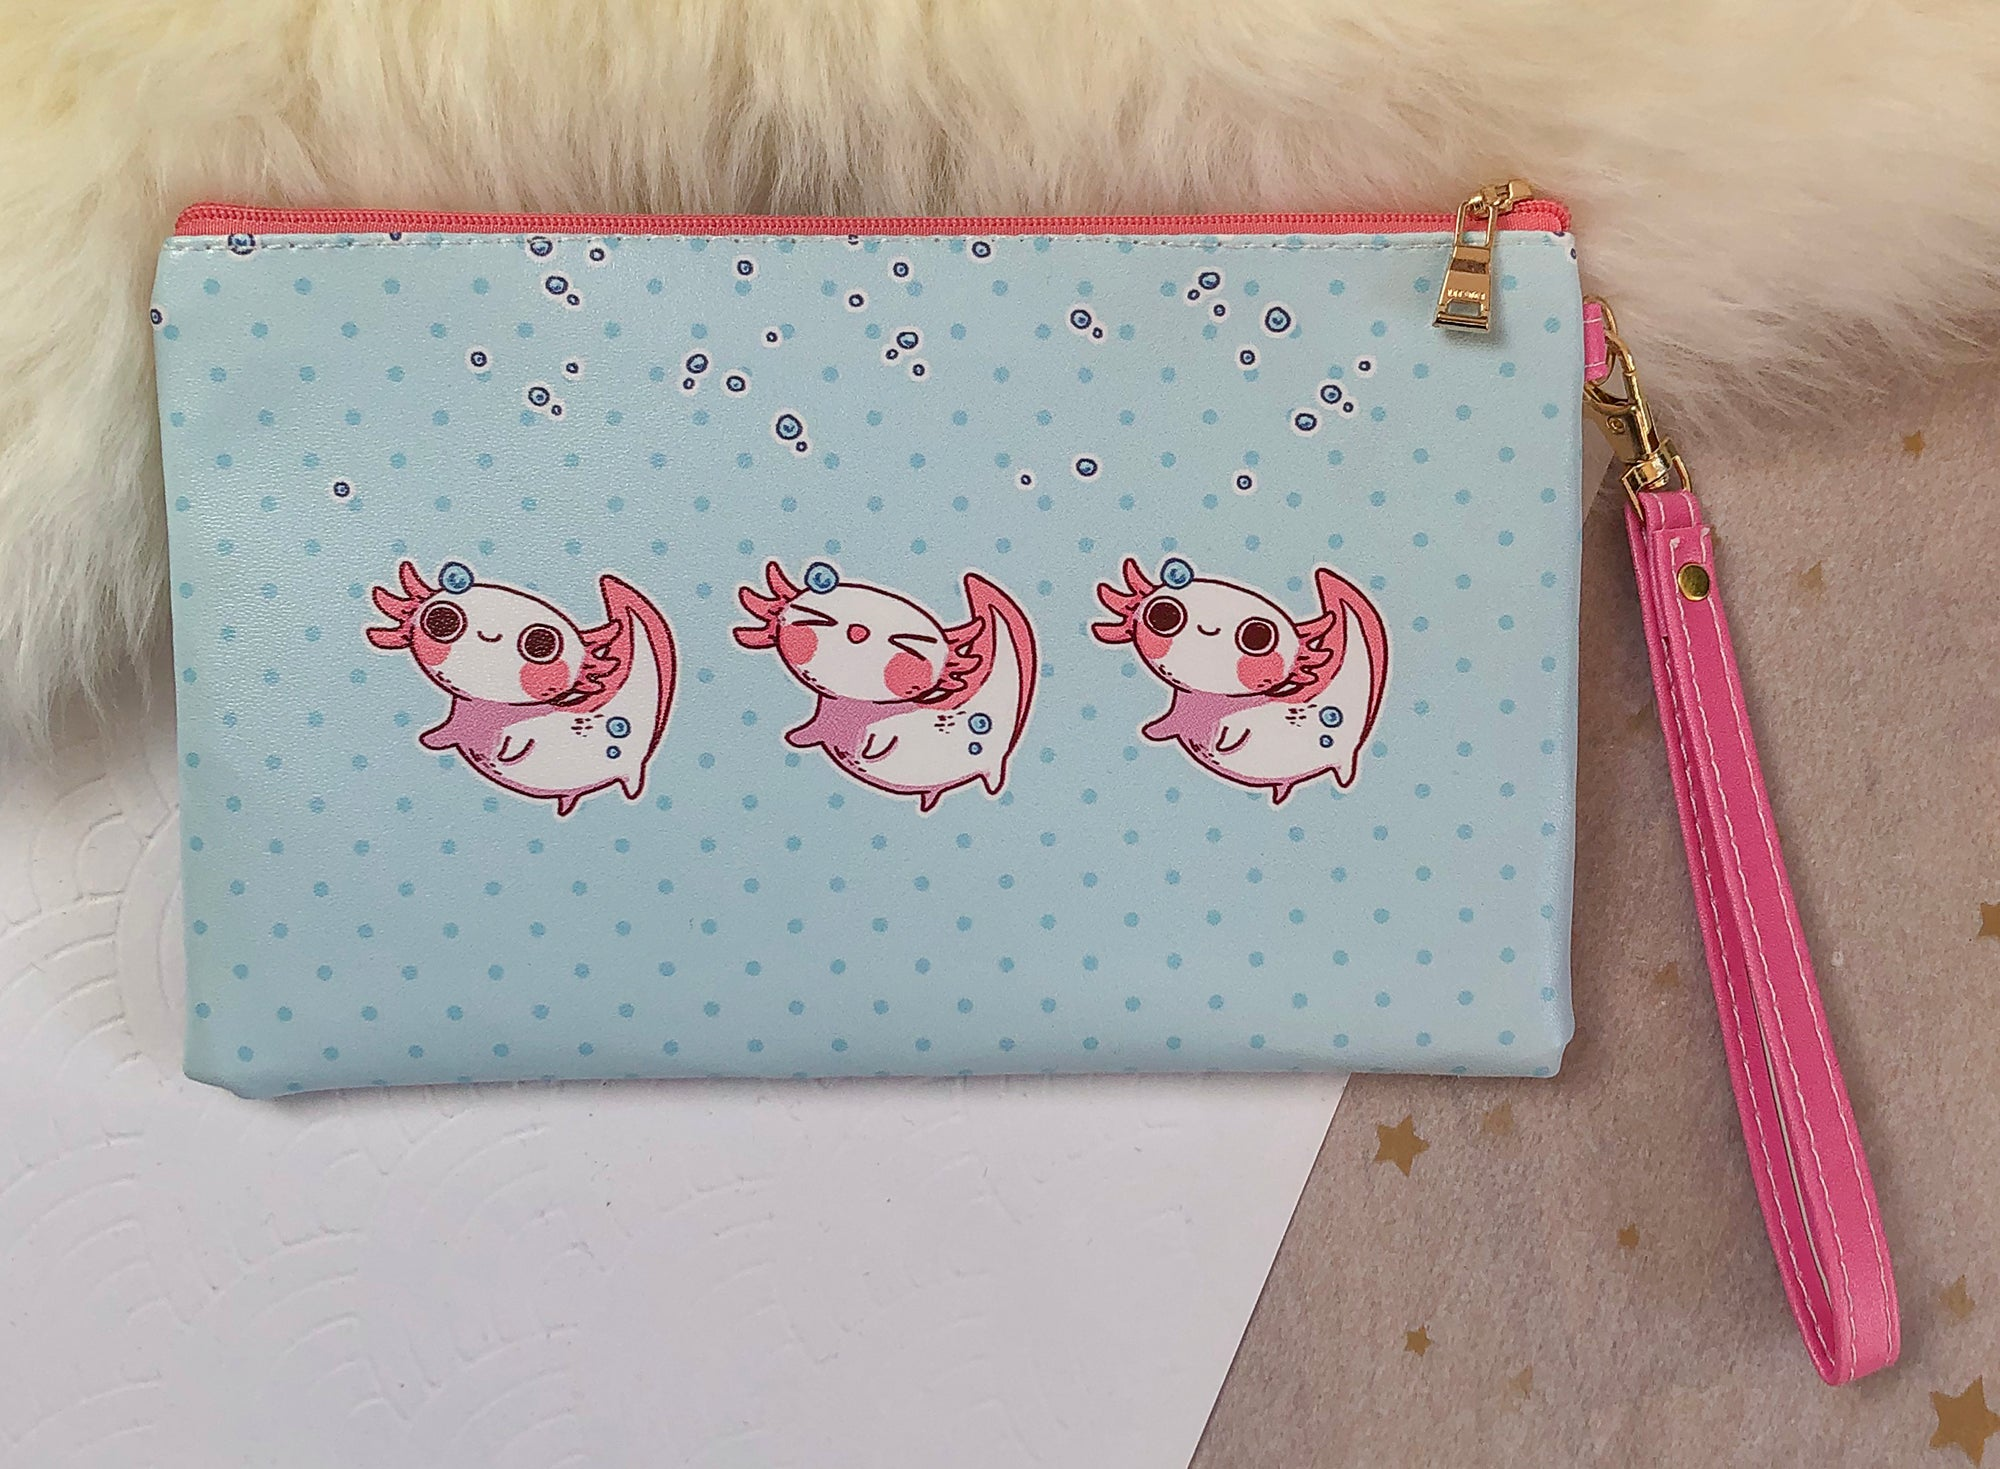 So many Axolotl Faux Leather Pouch | Bags - Aurigae Art &Illustration